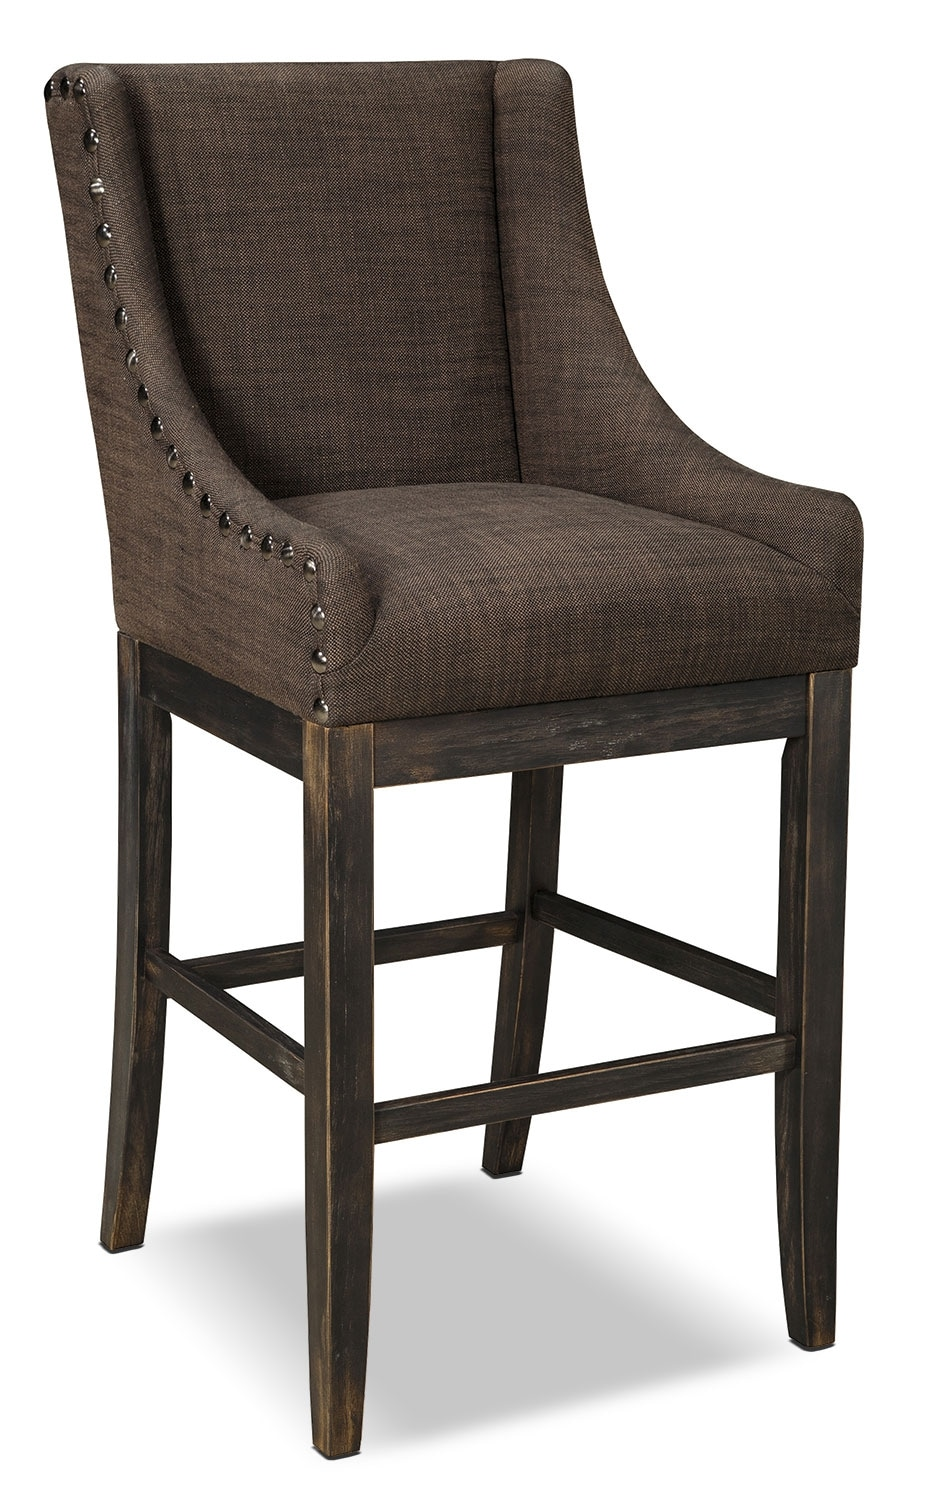 Moriann Wingback Barstool - Dark Brown